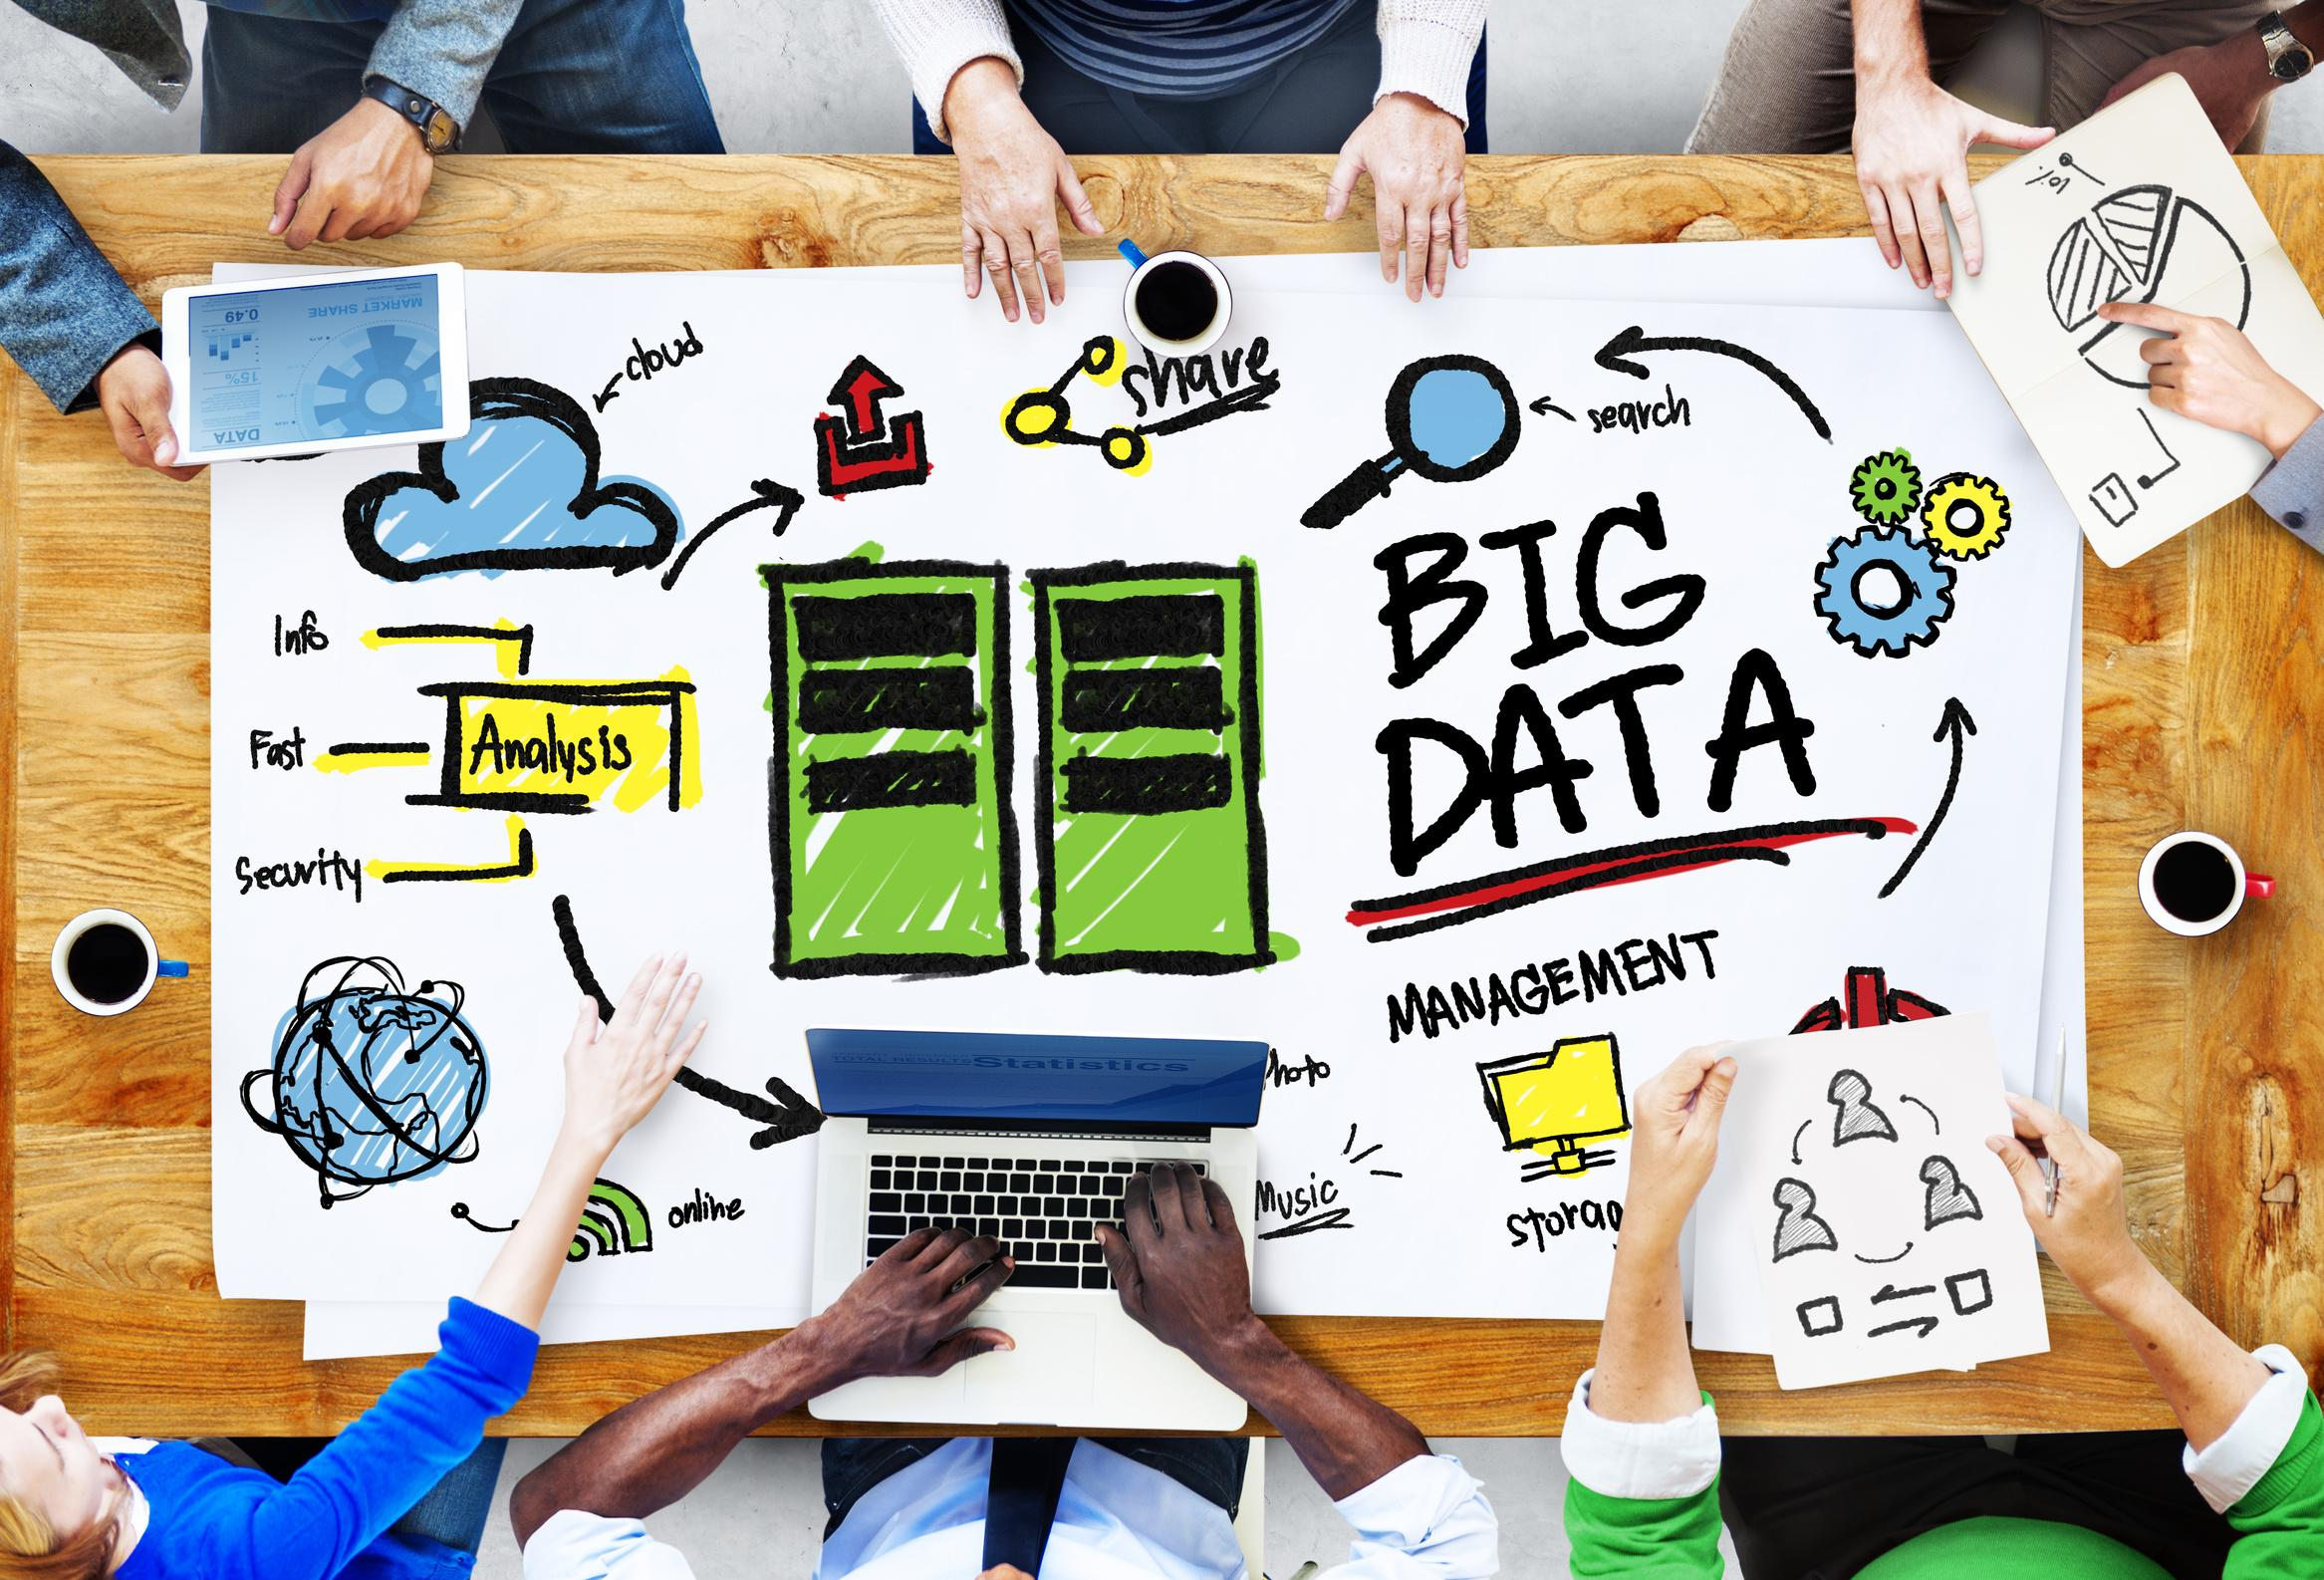 Mai 2015 Bild: Rawpixel - Ftlia.cm Big Data Hw and Hw Big?